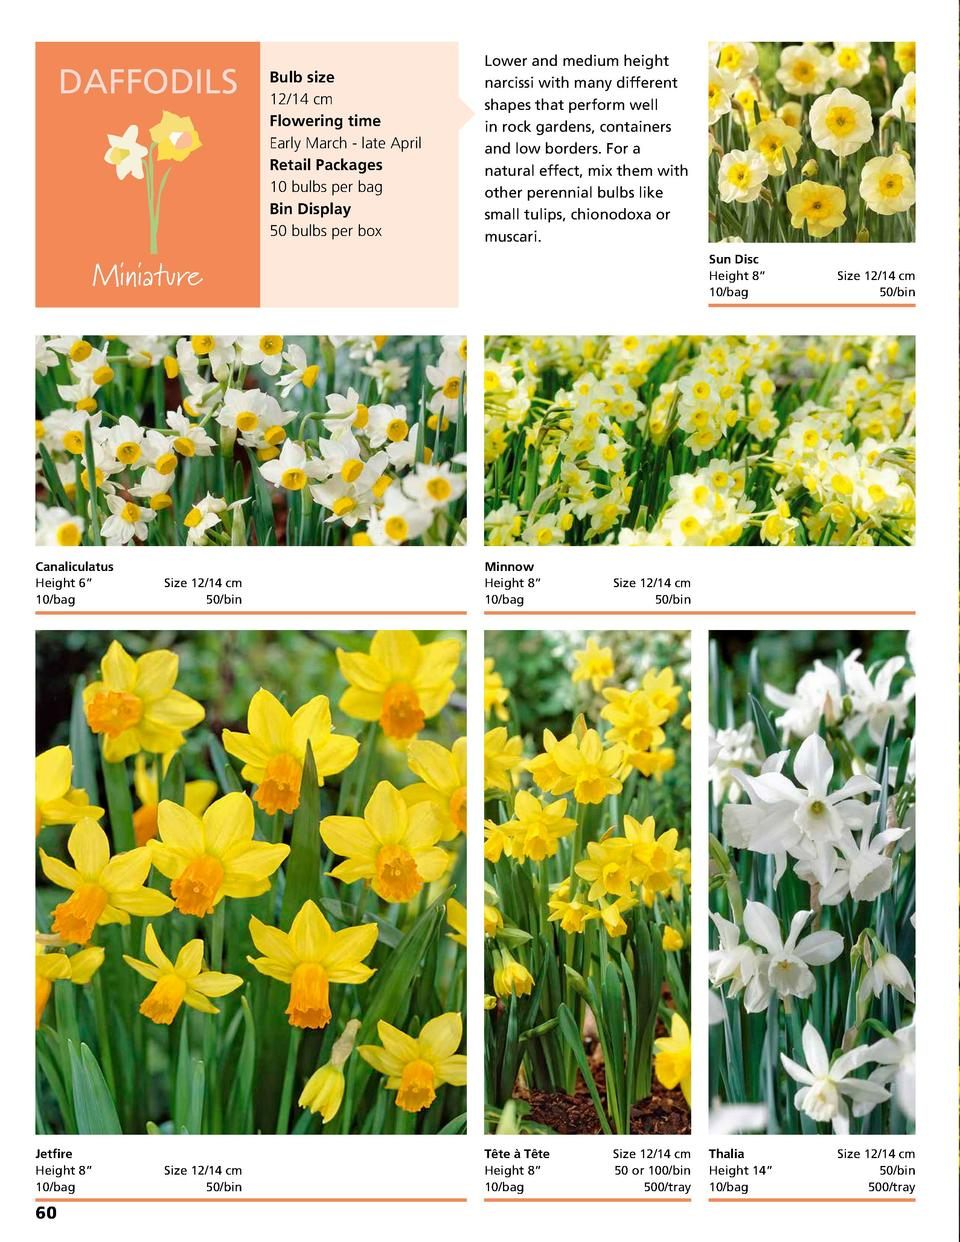 DAFFODILS  Bulb size 12 14 cm Flowering time Early March - late April Retail Packages 10 bulbs per bag Bin Display 50 bulb...